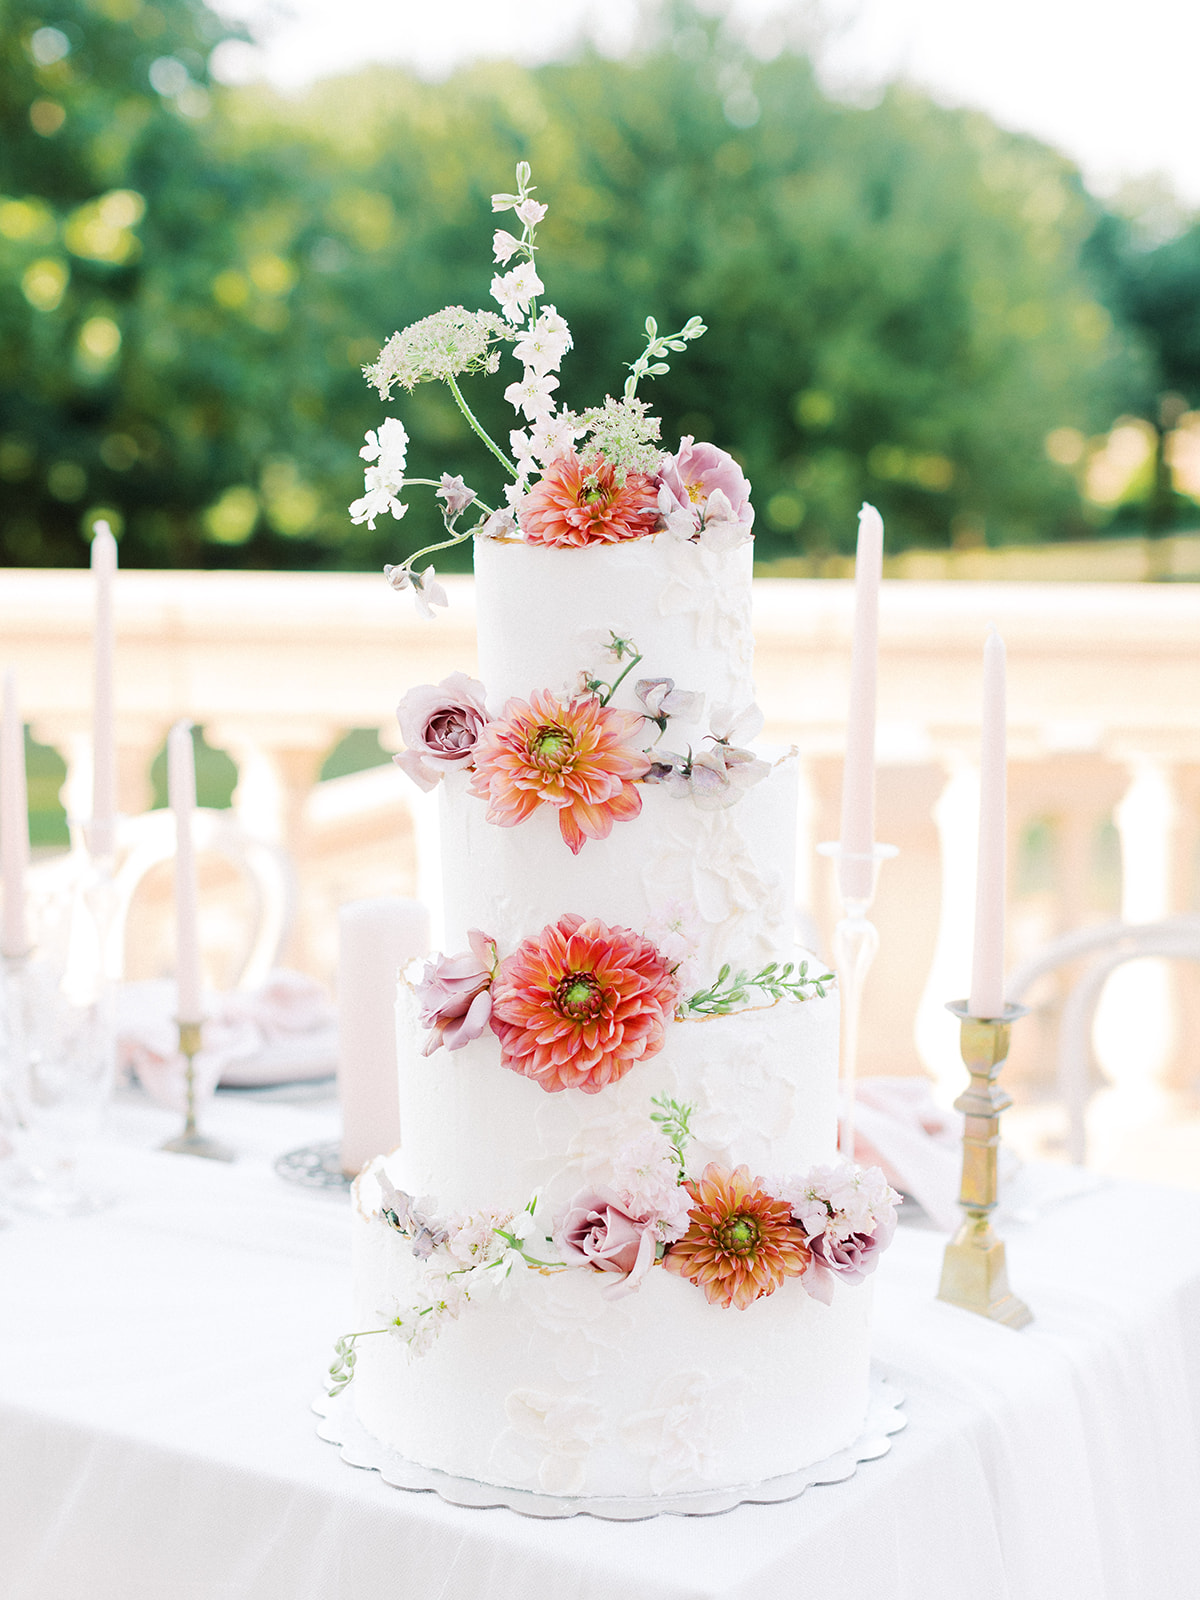 Floral wedding cake decor: Whimsical garden elegance styled shoot featured on Alexa Kay Events